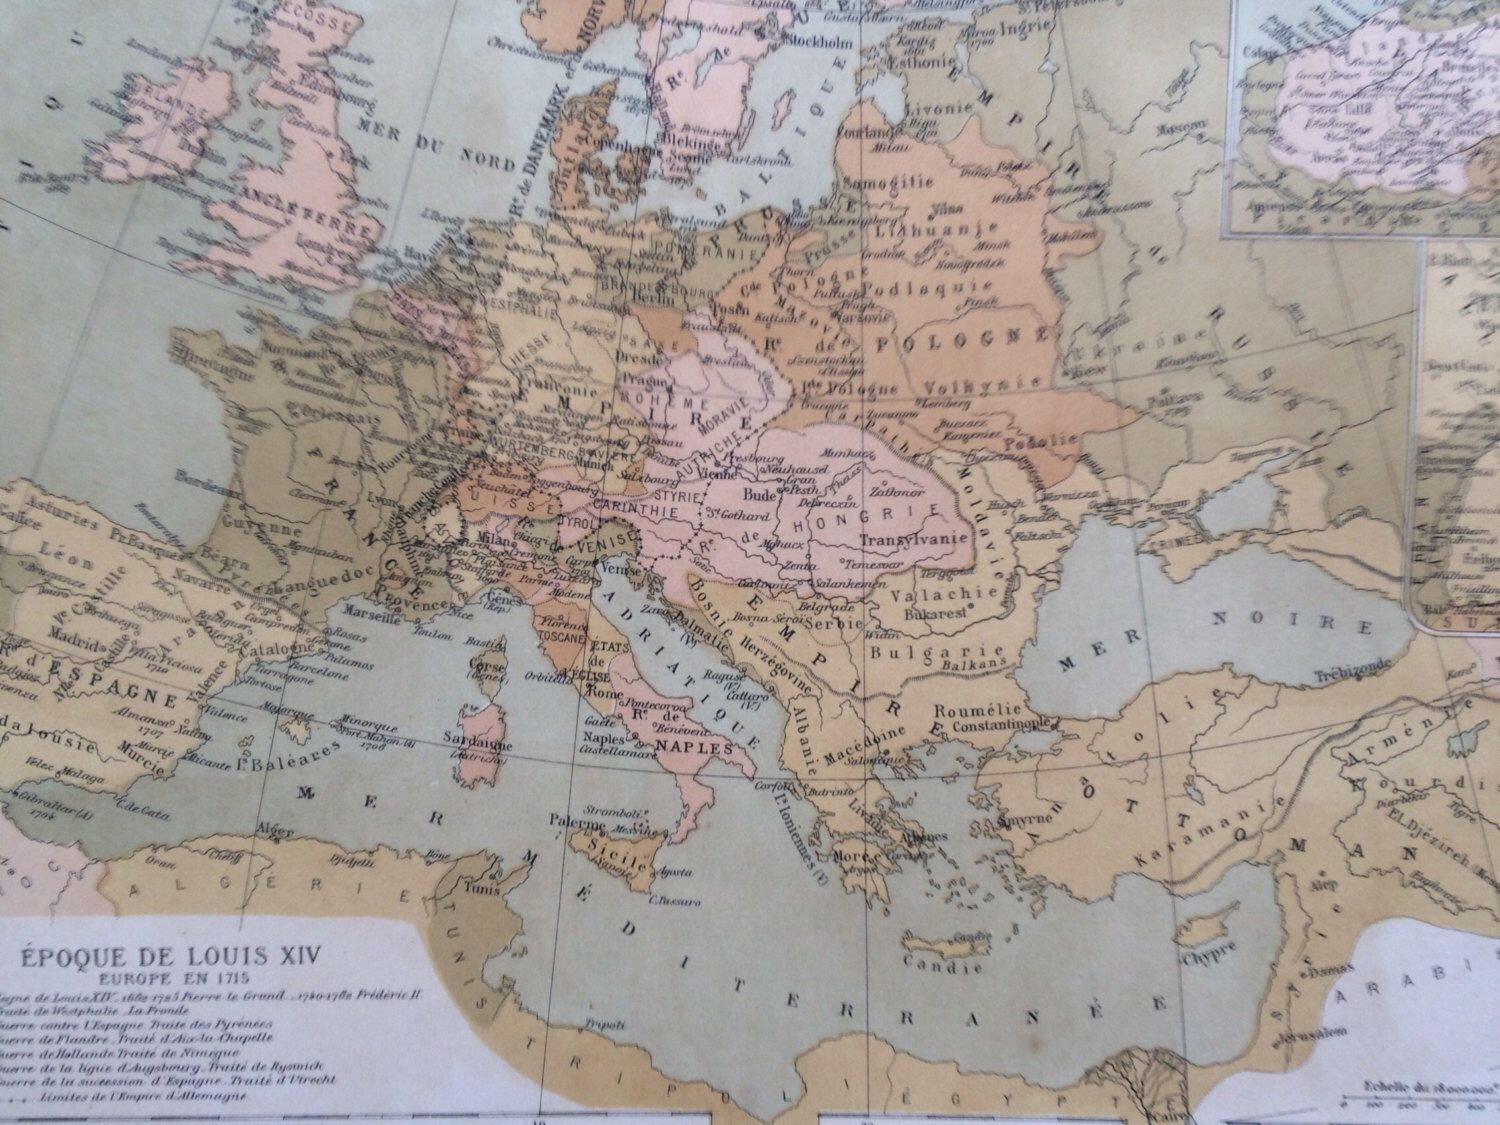 Map Of Europe Russia Middle East%0A      Europe Antique Map  Epoque de Louis XIV  French Language Map   Geography  Cartography  Historical Map